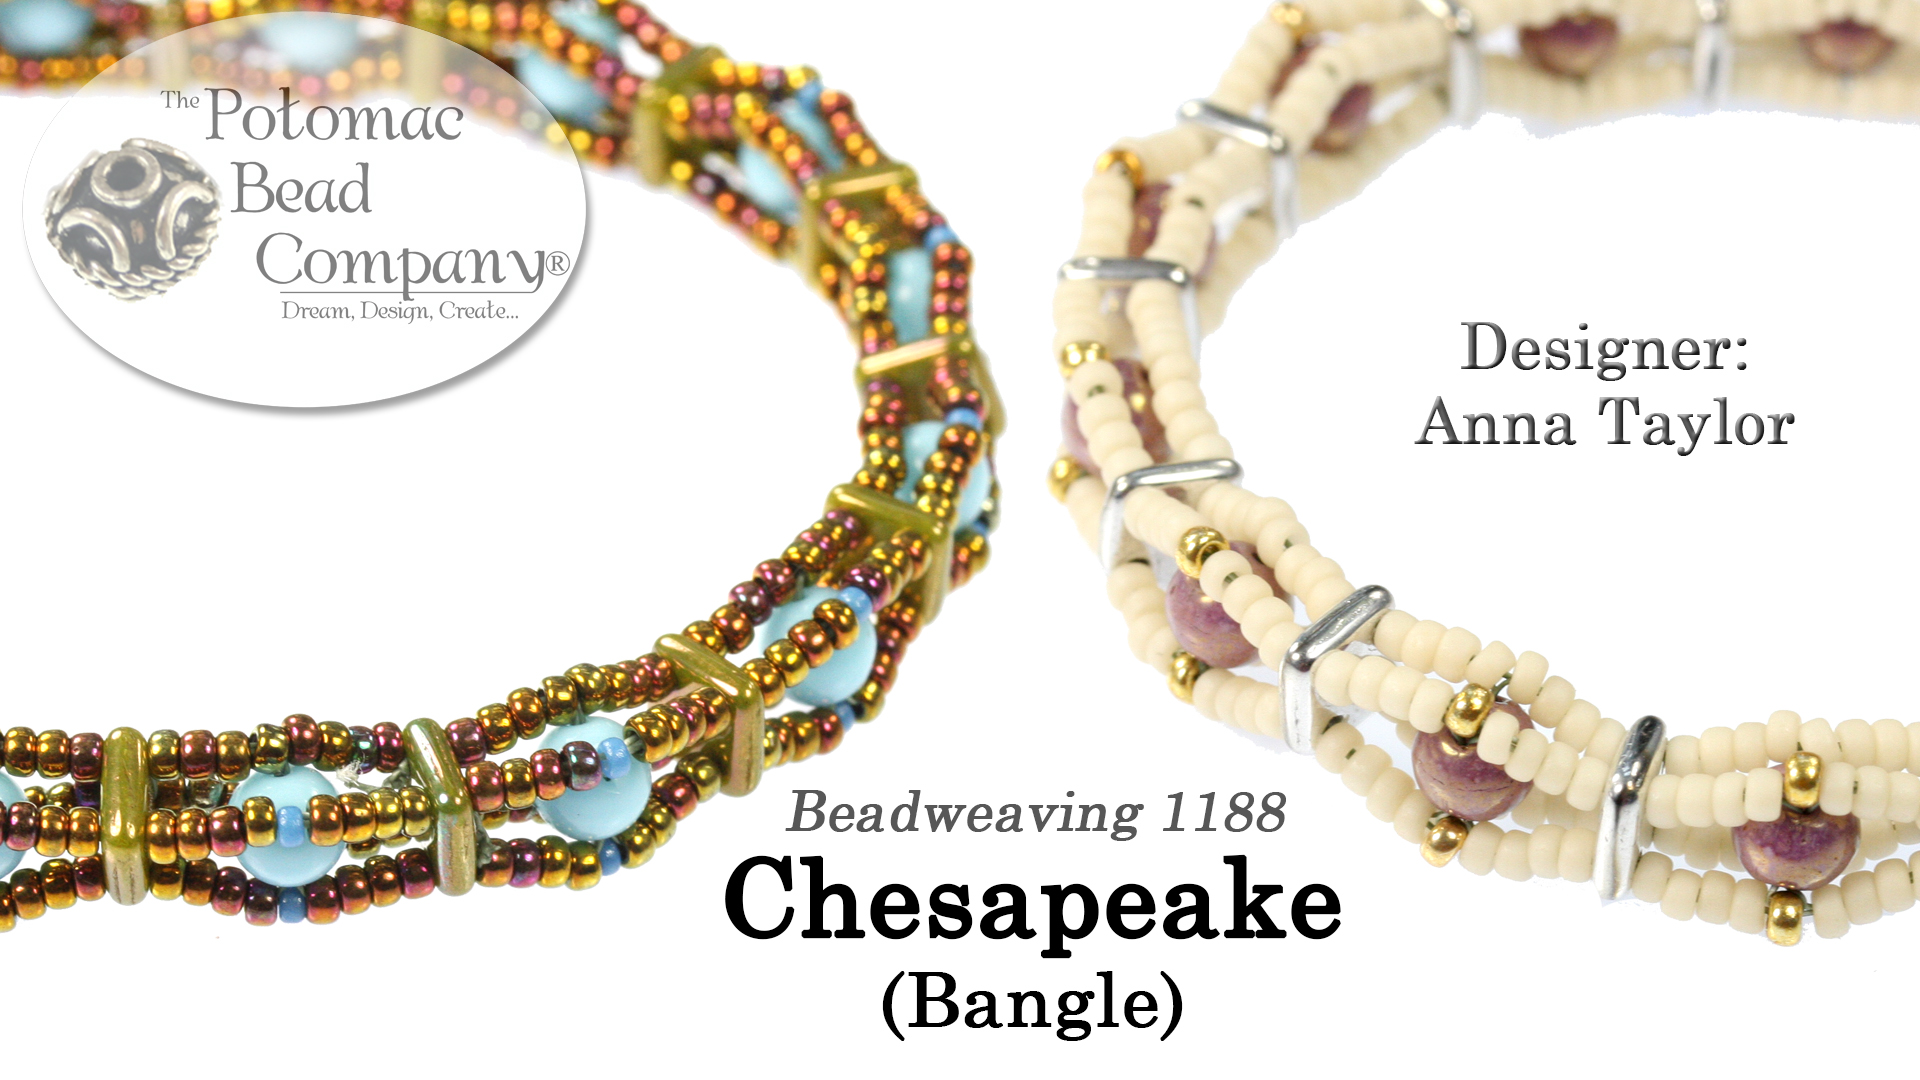 How to Bead Jewelry / Videos Sorted by Beads / All Other Bead Videos / Chesapeake Bangle Tutorial